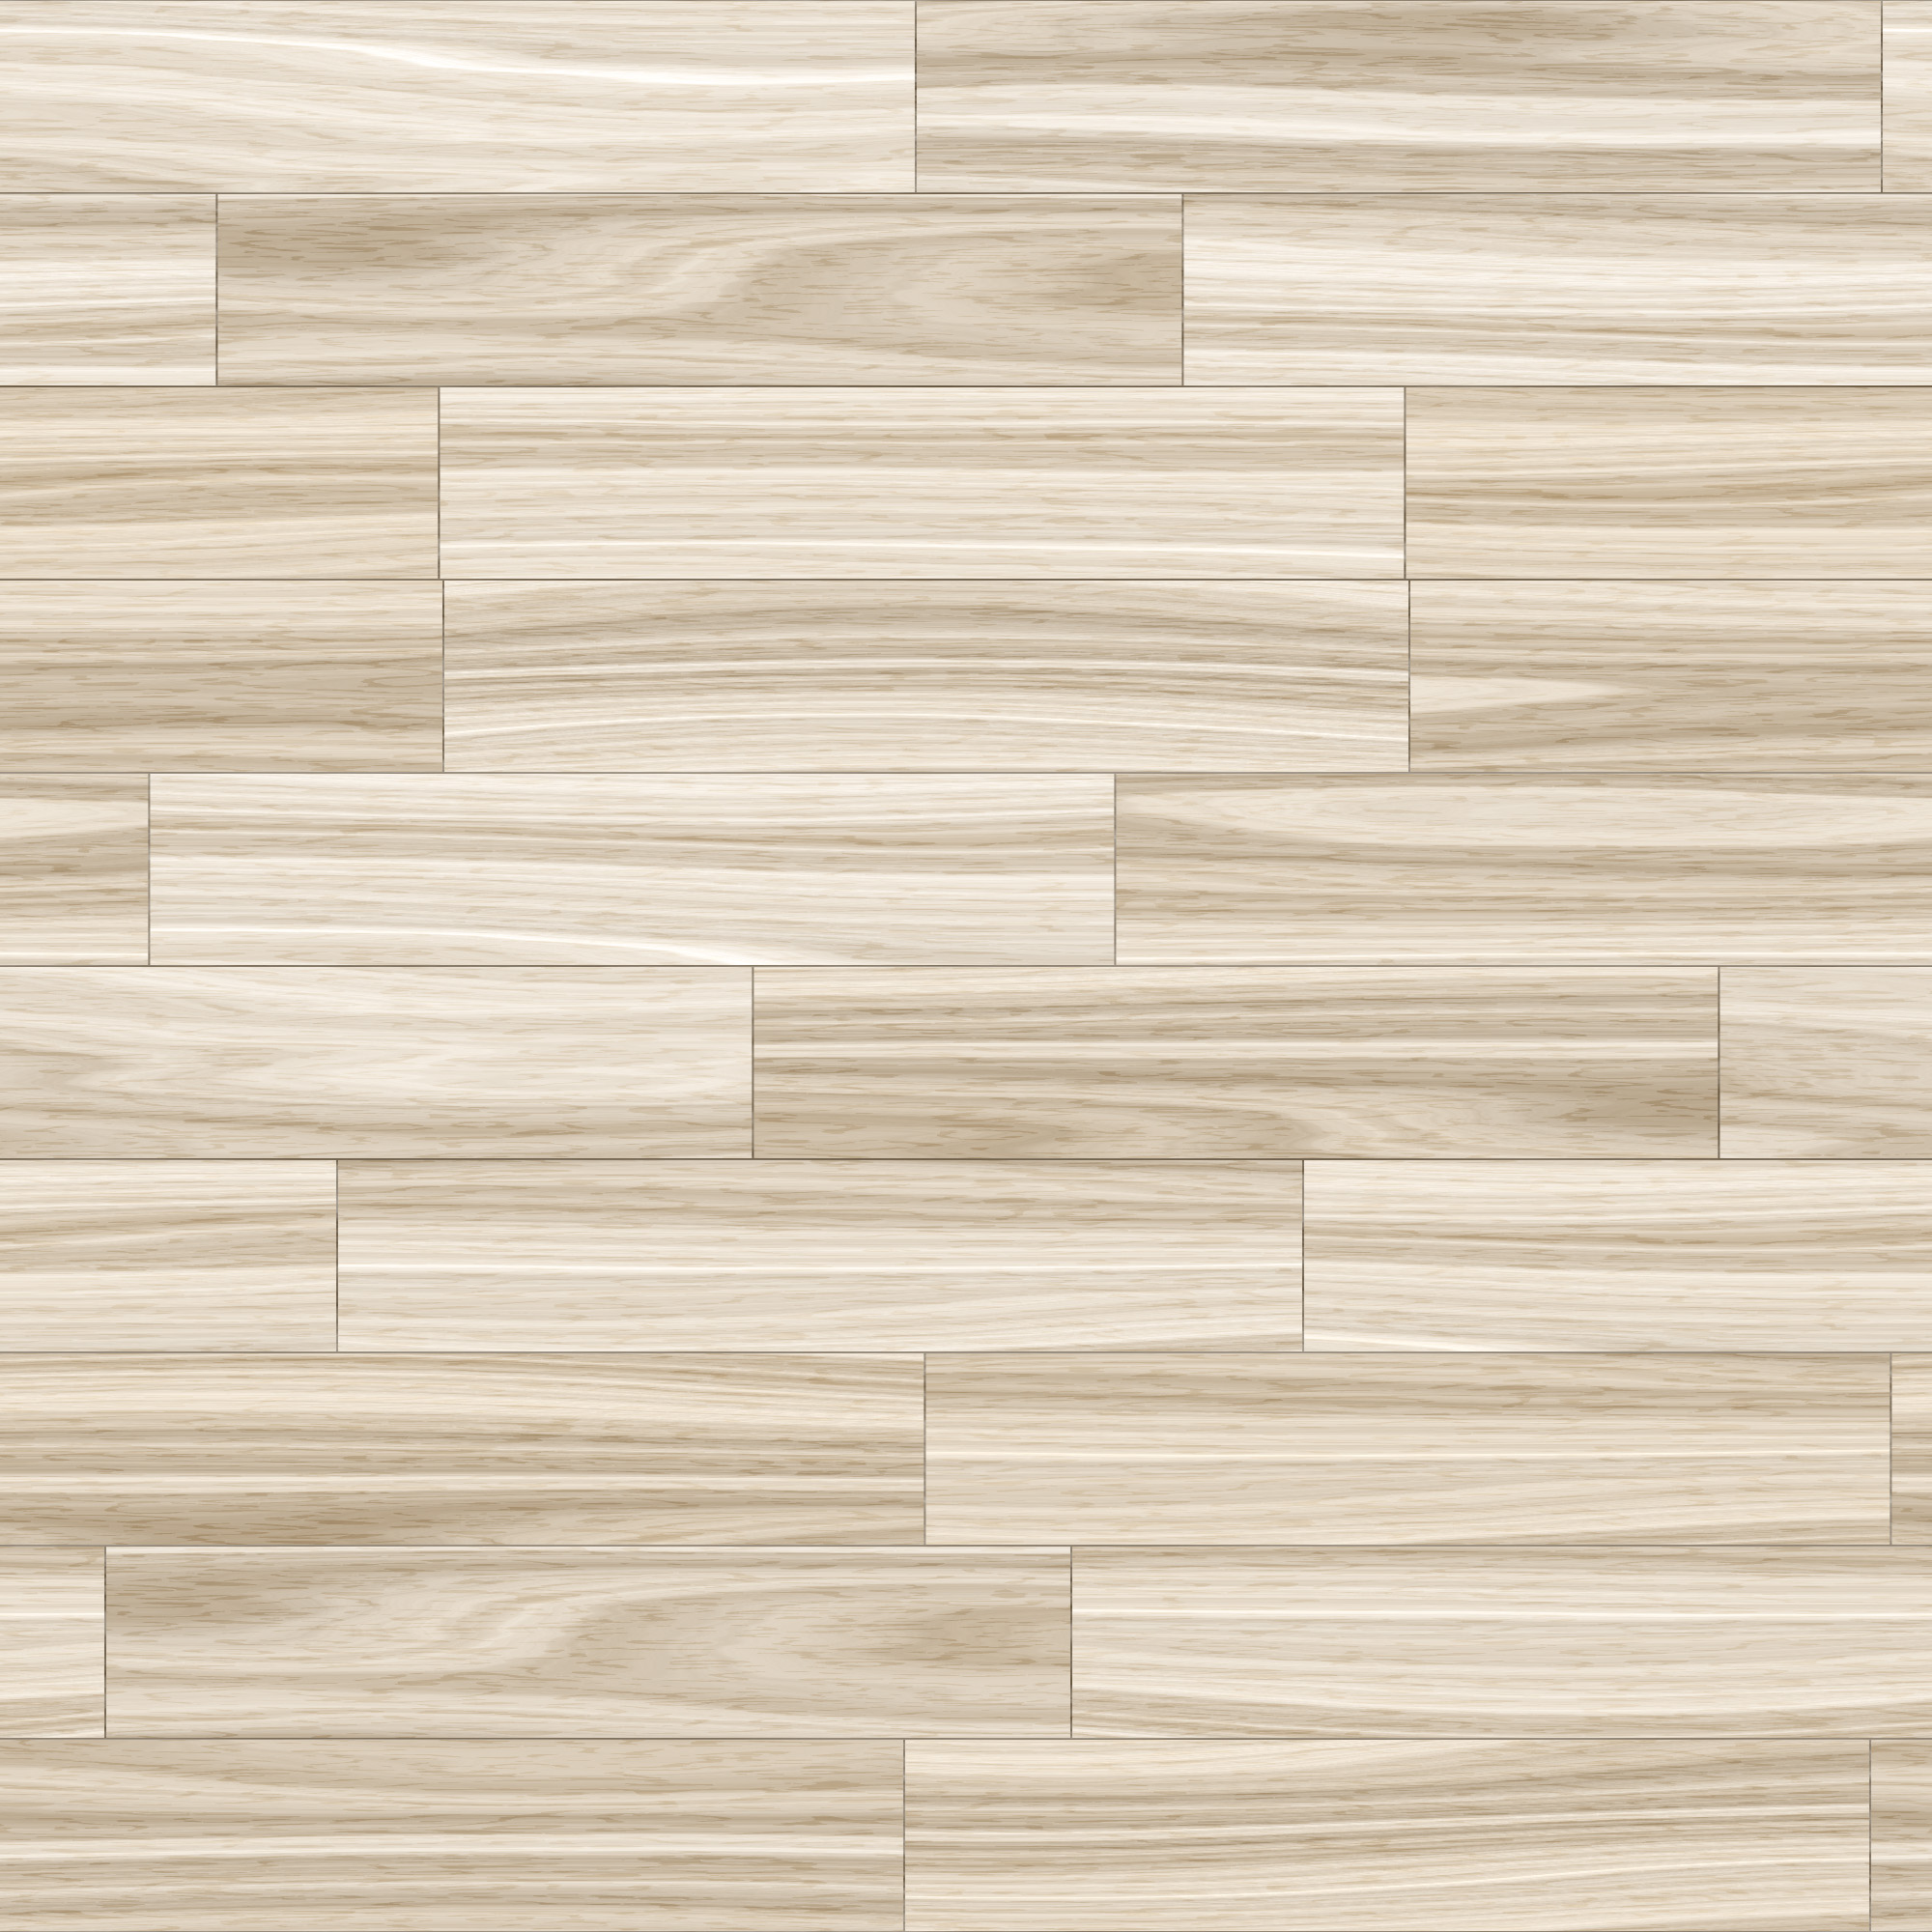 wood flooring texture gray seamless wood planks 4 QANIHBW